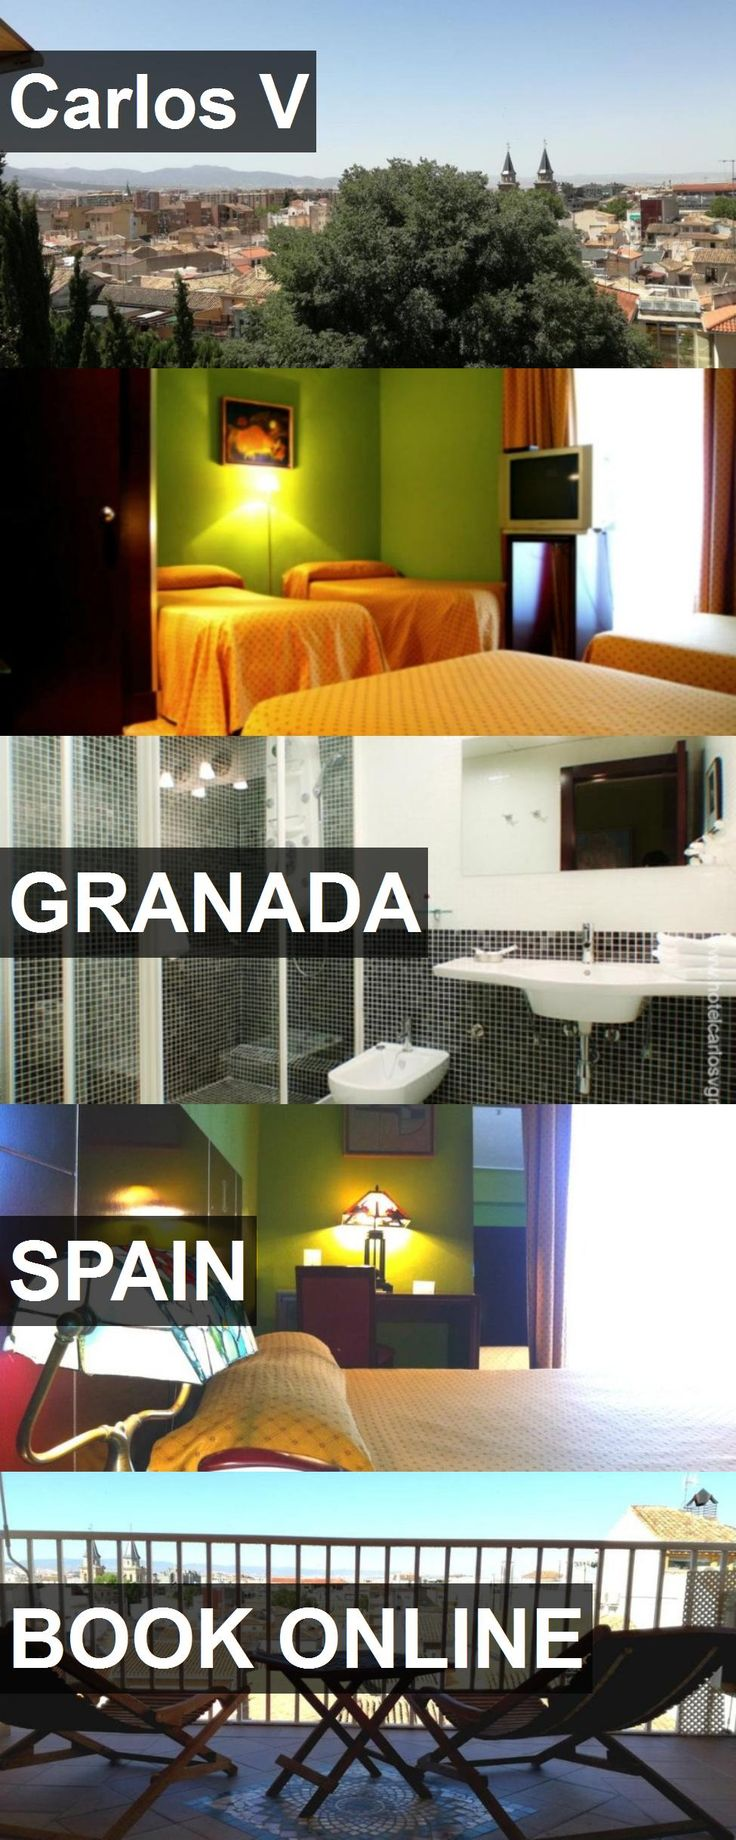 Hotel Carlos V in Granada, Spain. For more information, photos, reviews and best prices please follow the link. #Spain #Granada #CarlosV #hotel #travel #vacation